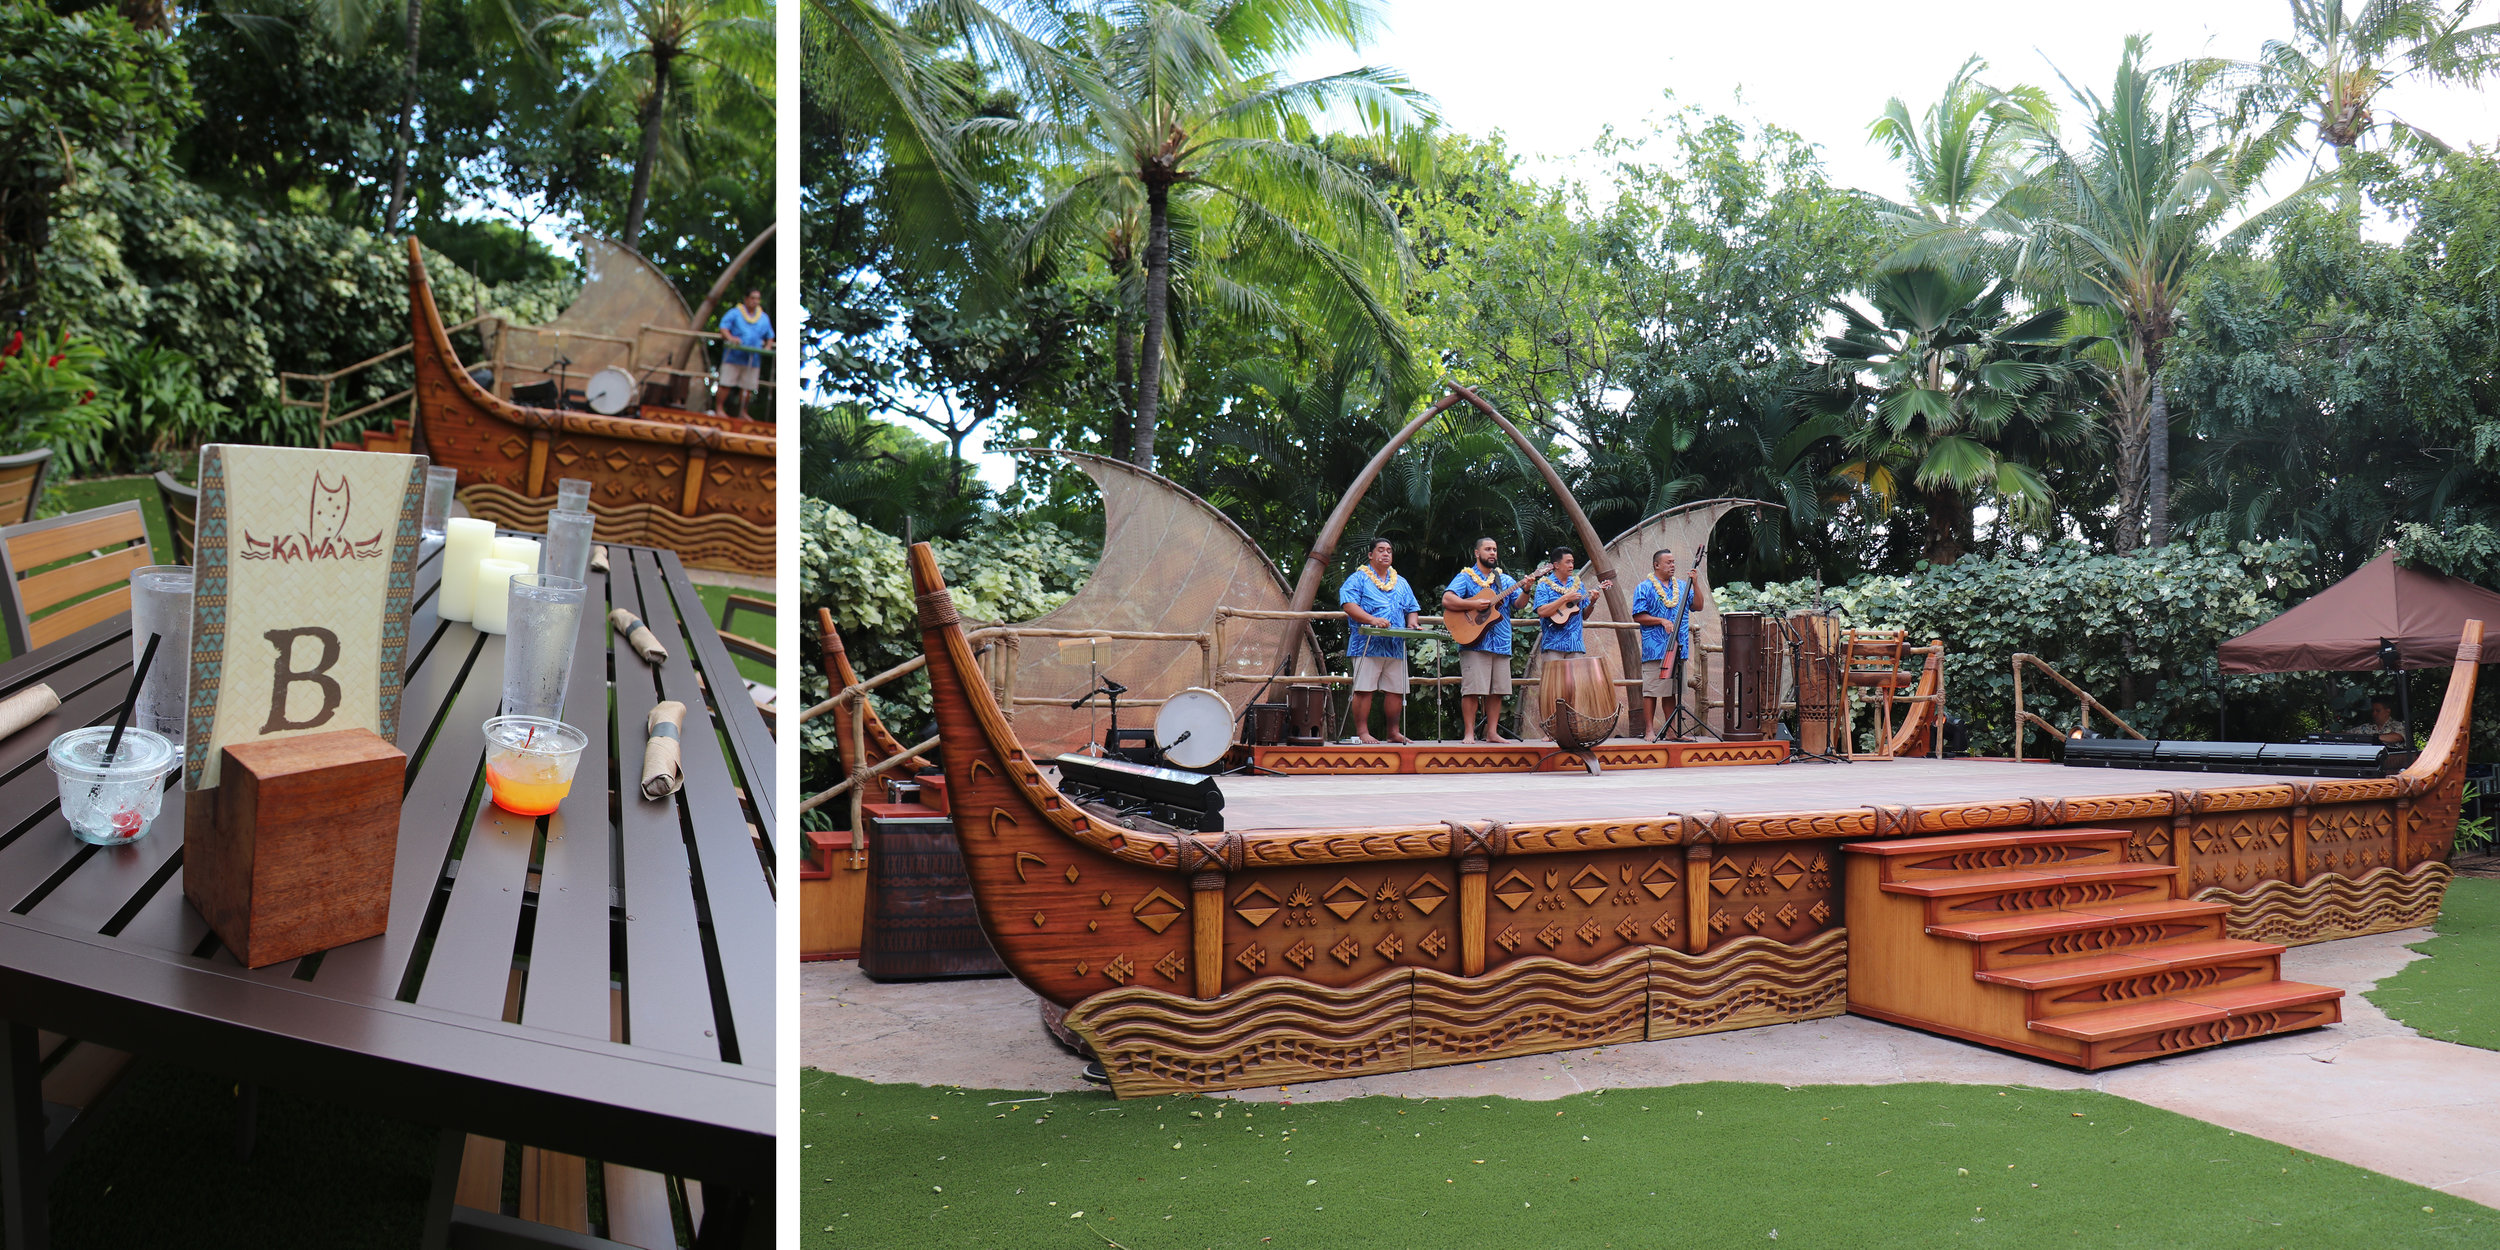 Here was our little VIP table with an epic view of the stage, which was a really cool boat design.